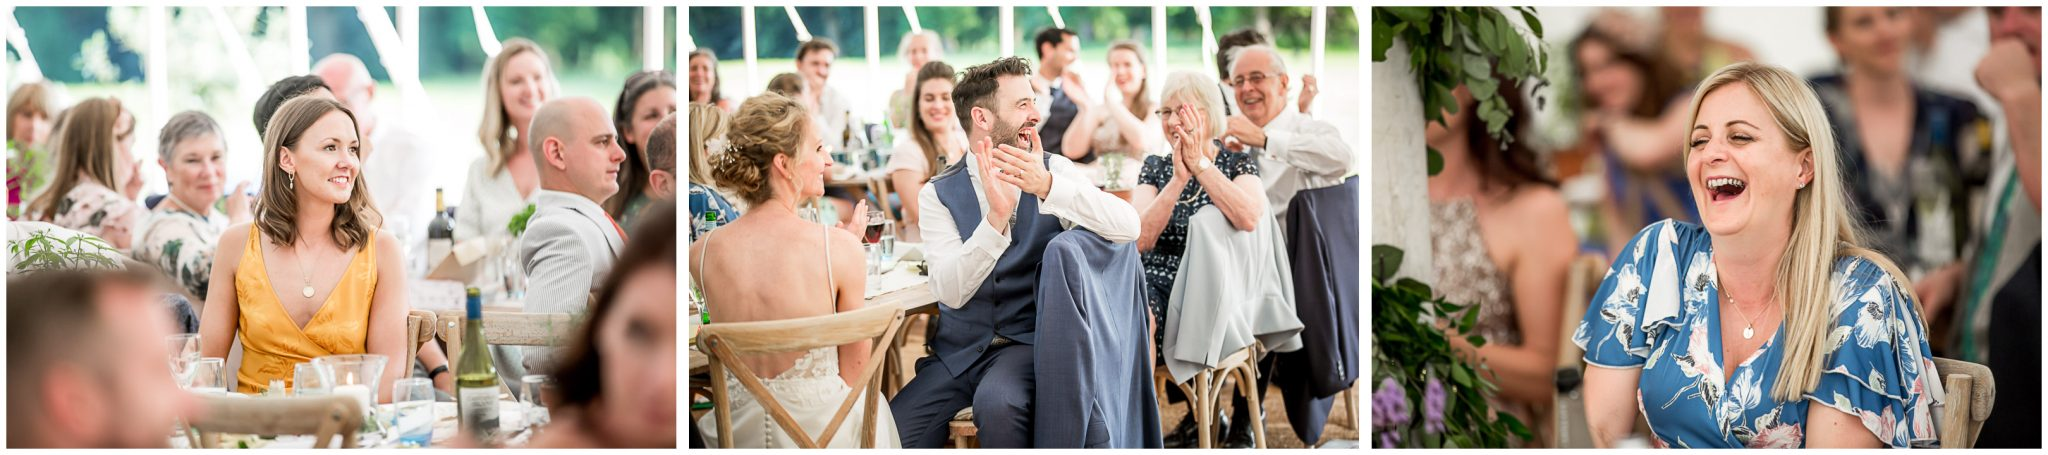 Bride, groom and guests listen to the best man's speech